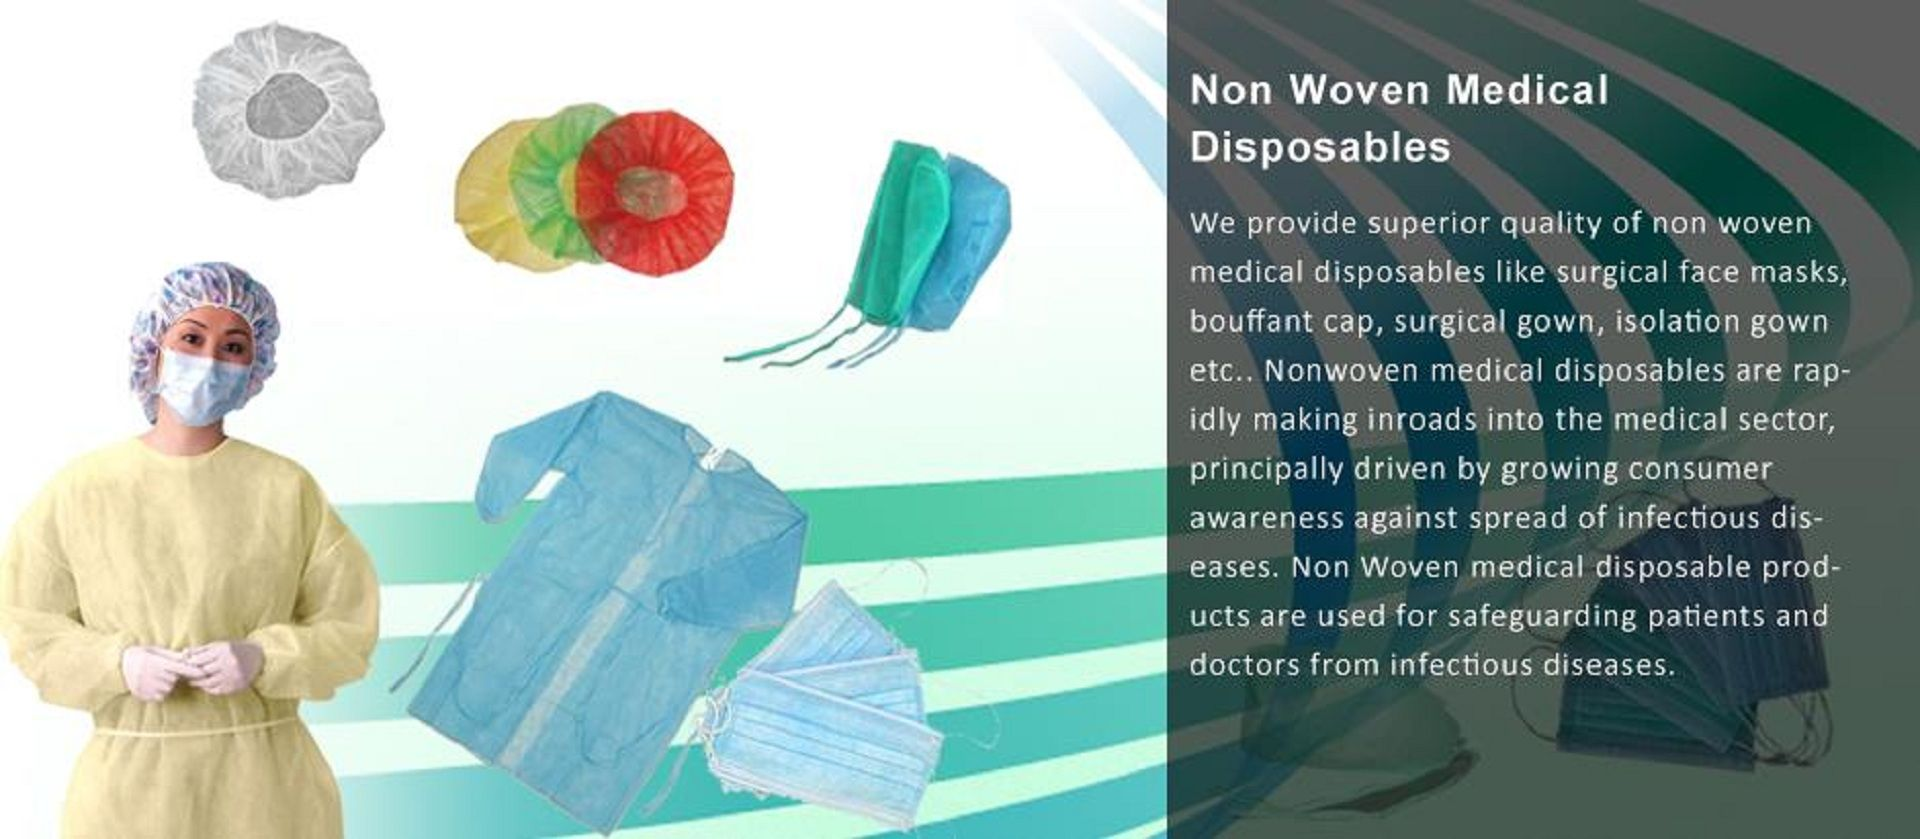 We provide superior quality of Nonwoven medical disposable